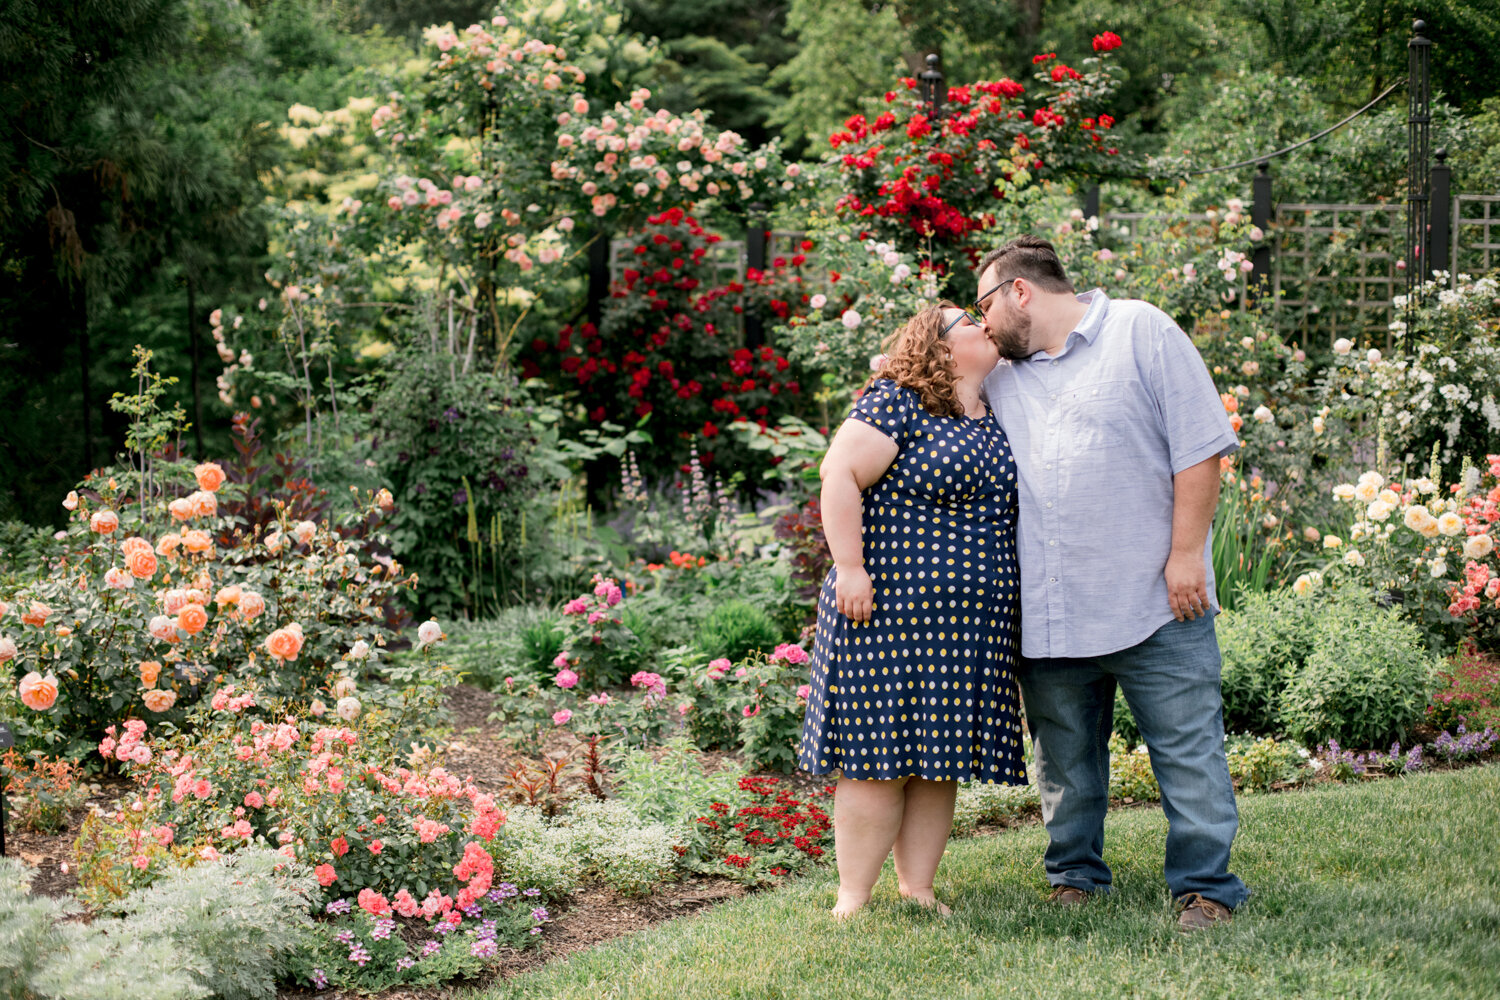 morris-arboretum-chestnut-hill-garden-engagement-session-philadelphia-wedding-photography-12.jpg